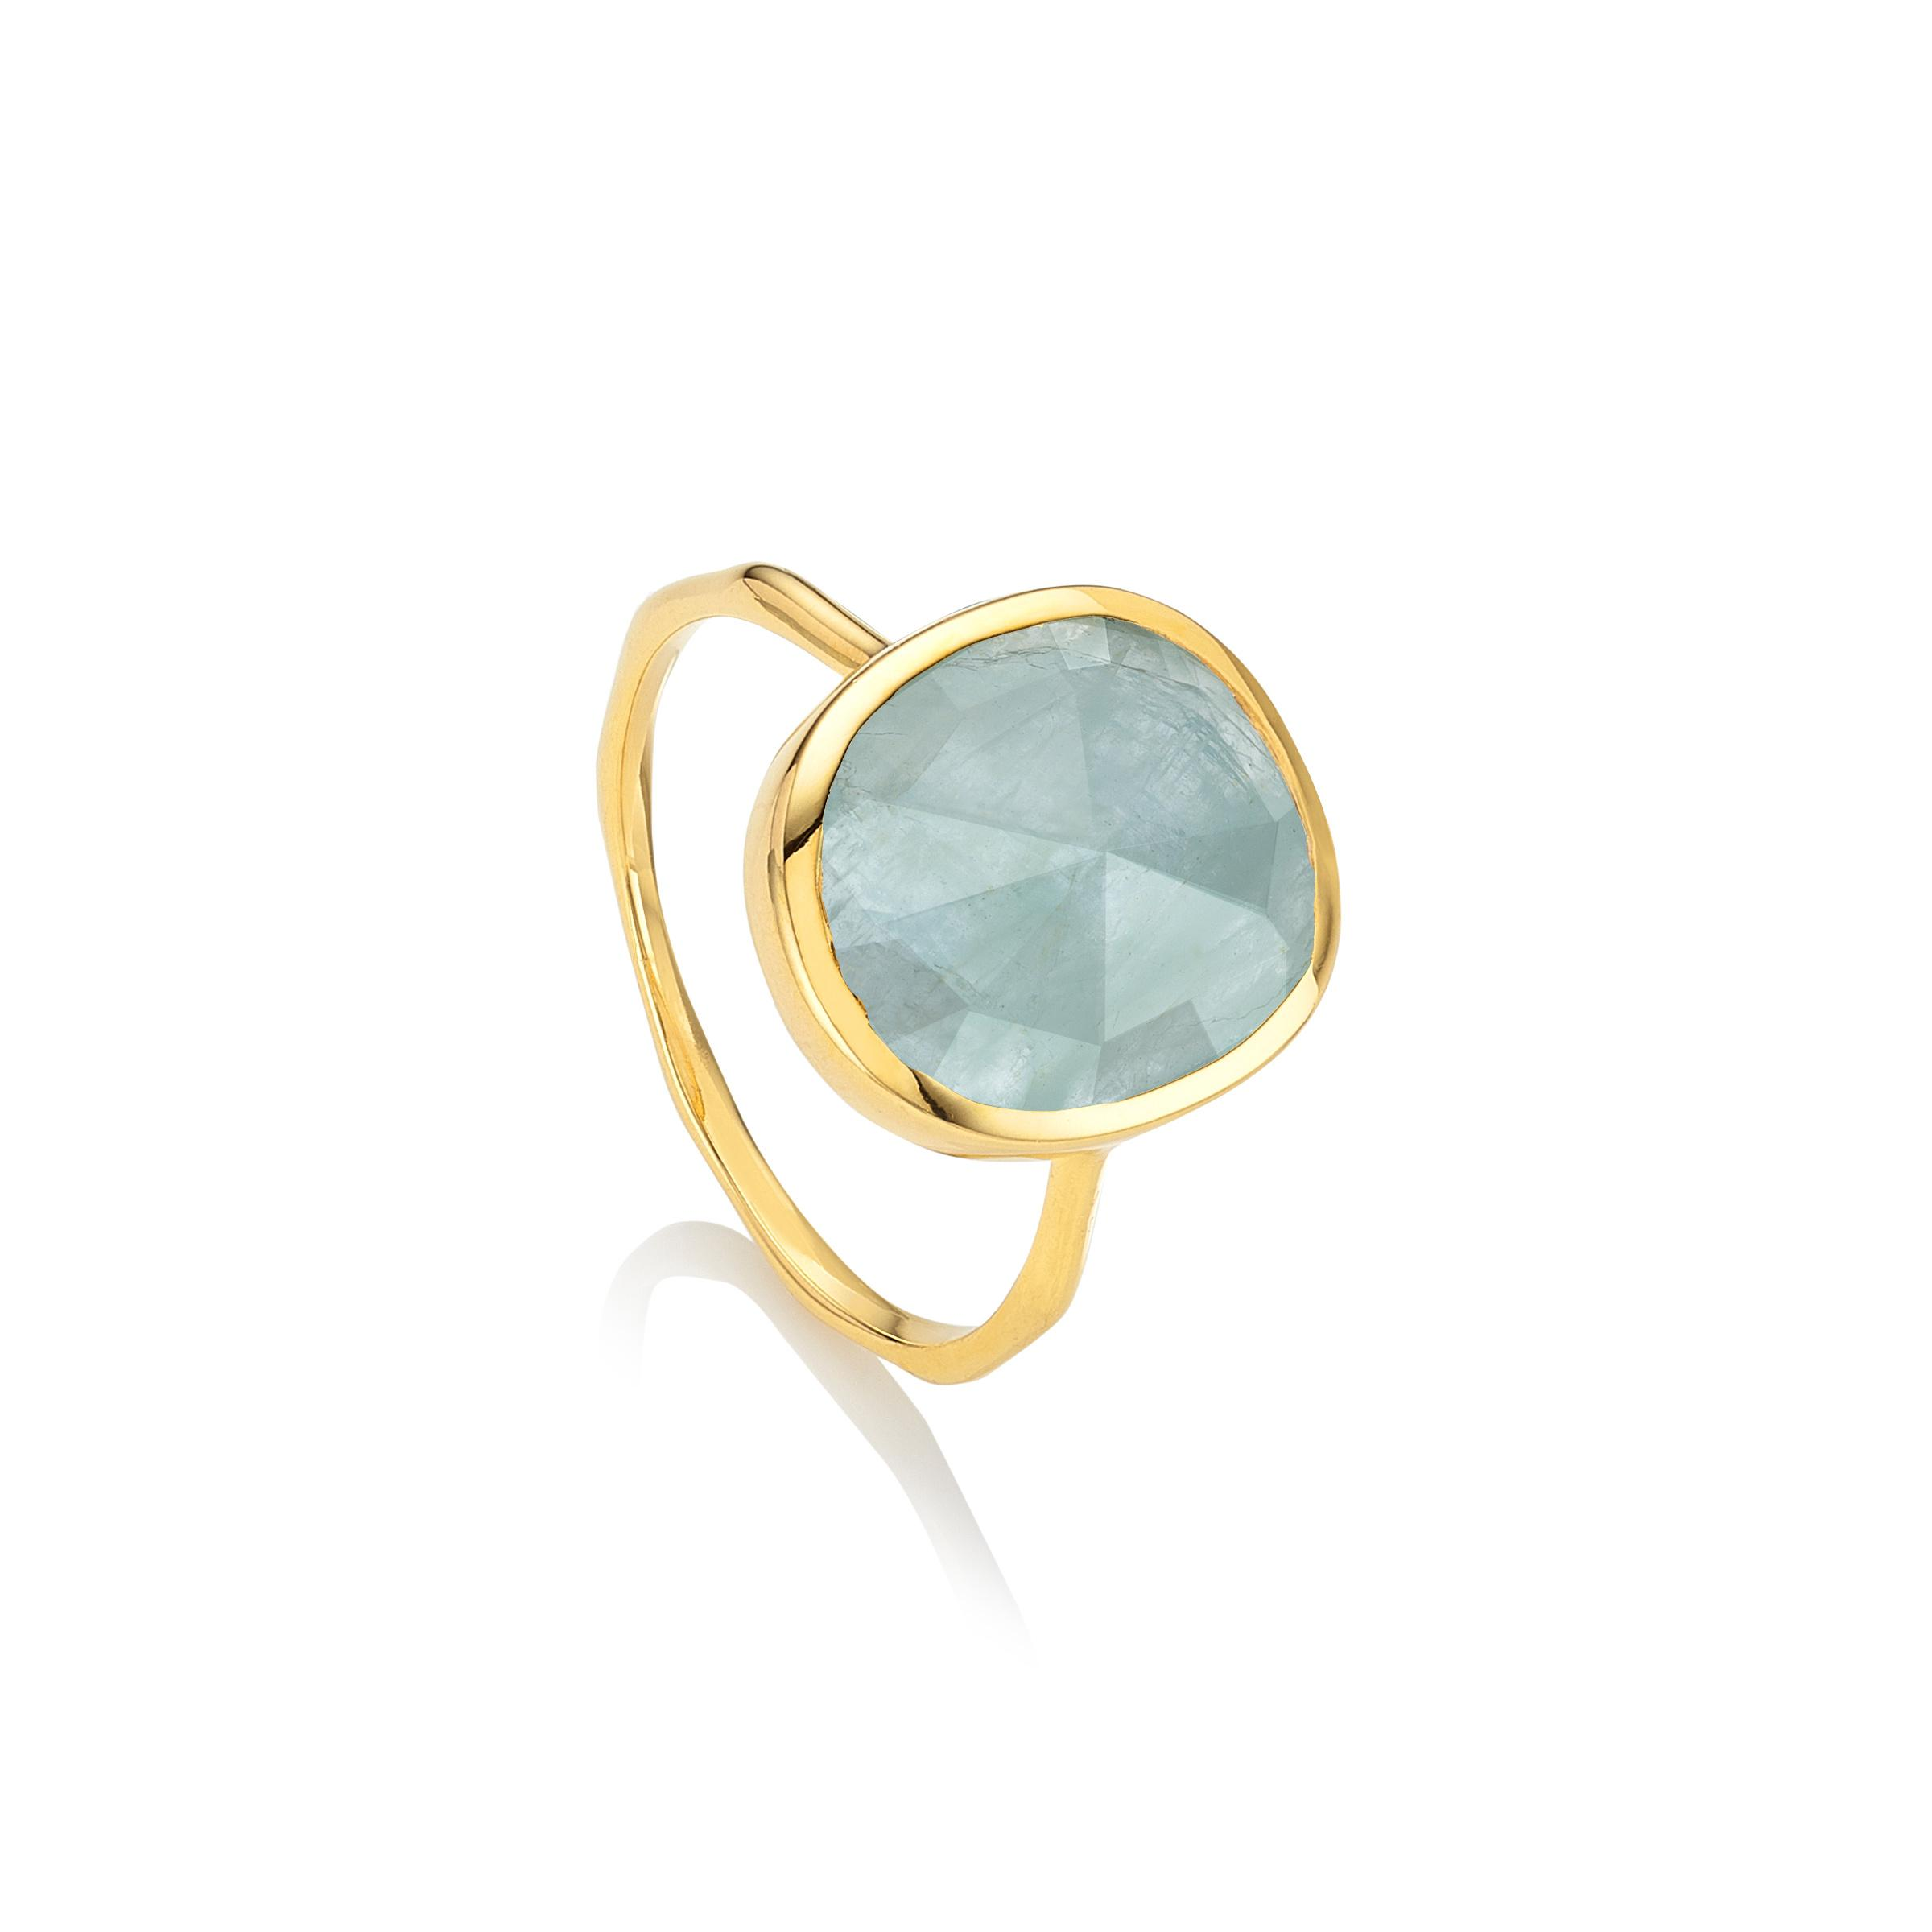 Gold Siren Medium Stacking Ring Blue Lace Agate Monica Vinader 2DTHe6n9p